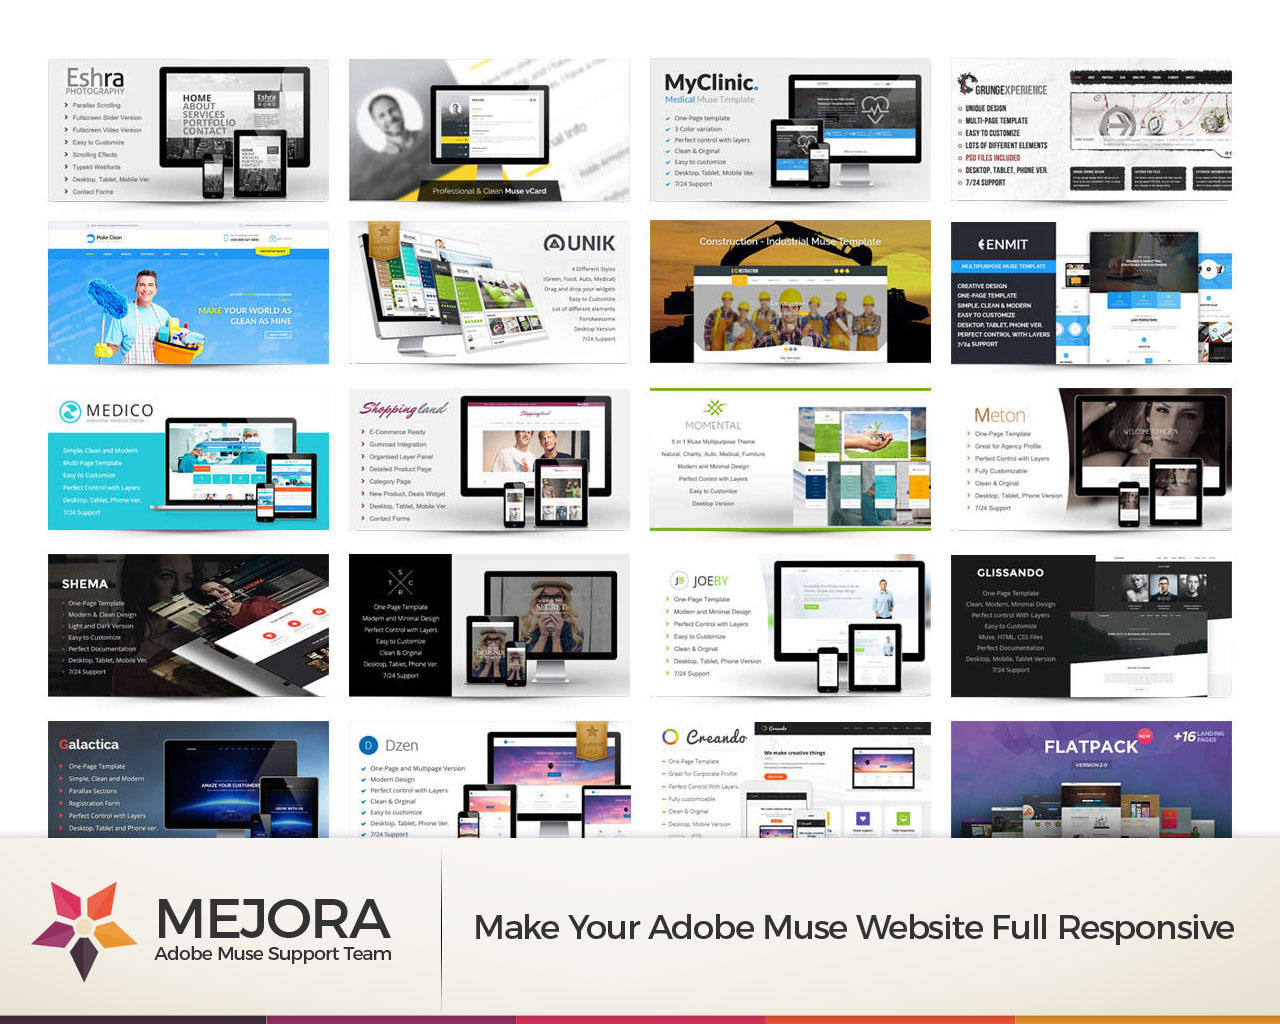 Make Your Adobe Muse Website Fully Responsive by Mejora - 109463